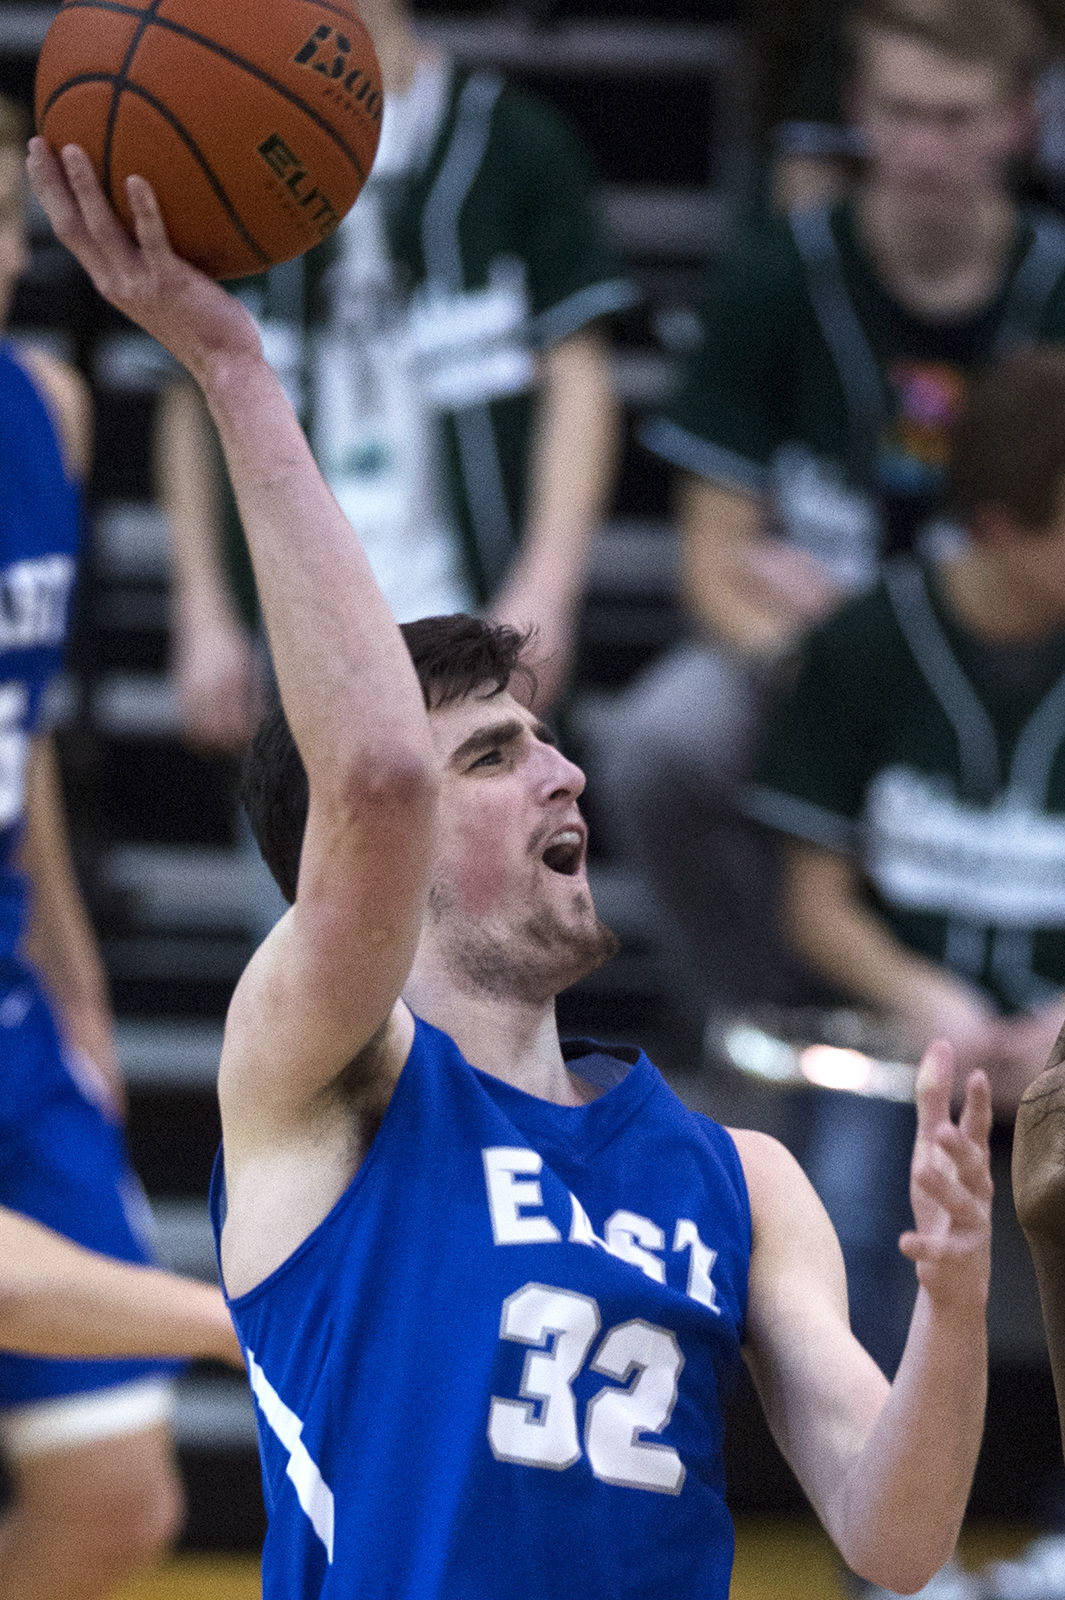 Lincoln East vs. Lincoln Southwest, boys hoops, 2/9/18